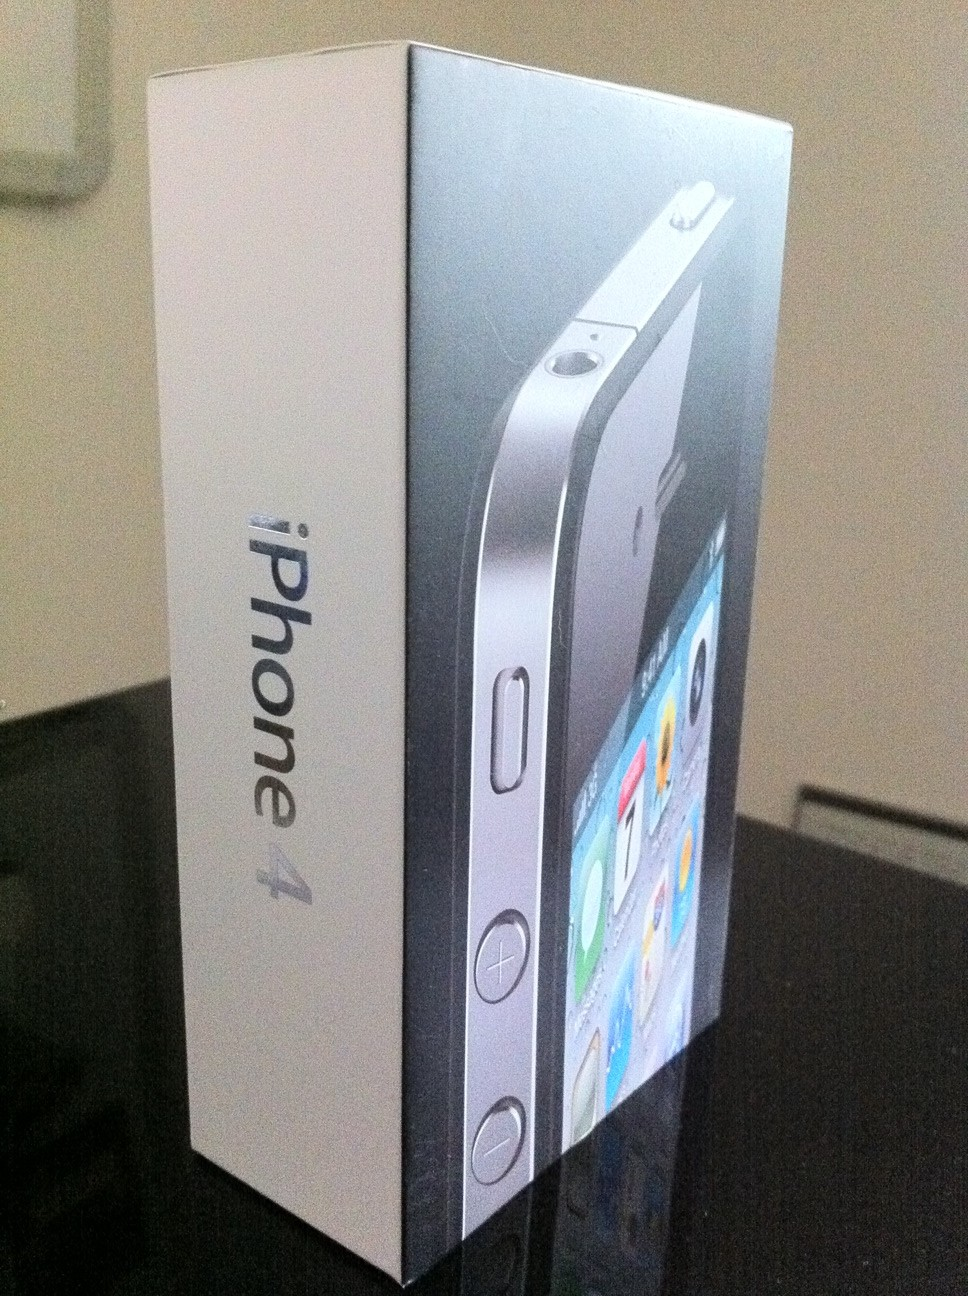 The iPhone 4 package nearly as small as the device itself